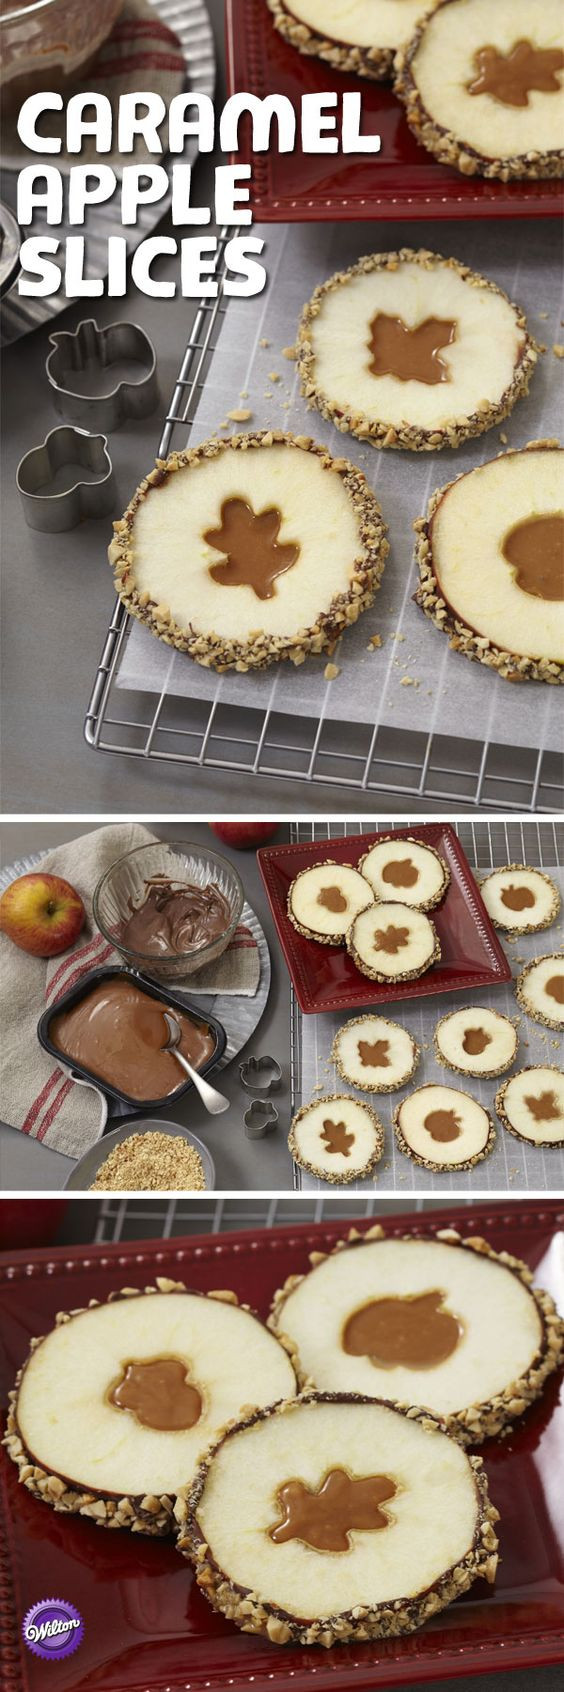 Light Fall Desserts  The BEST Easy Fall Harvest and Winter Desserts & Treats